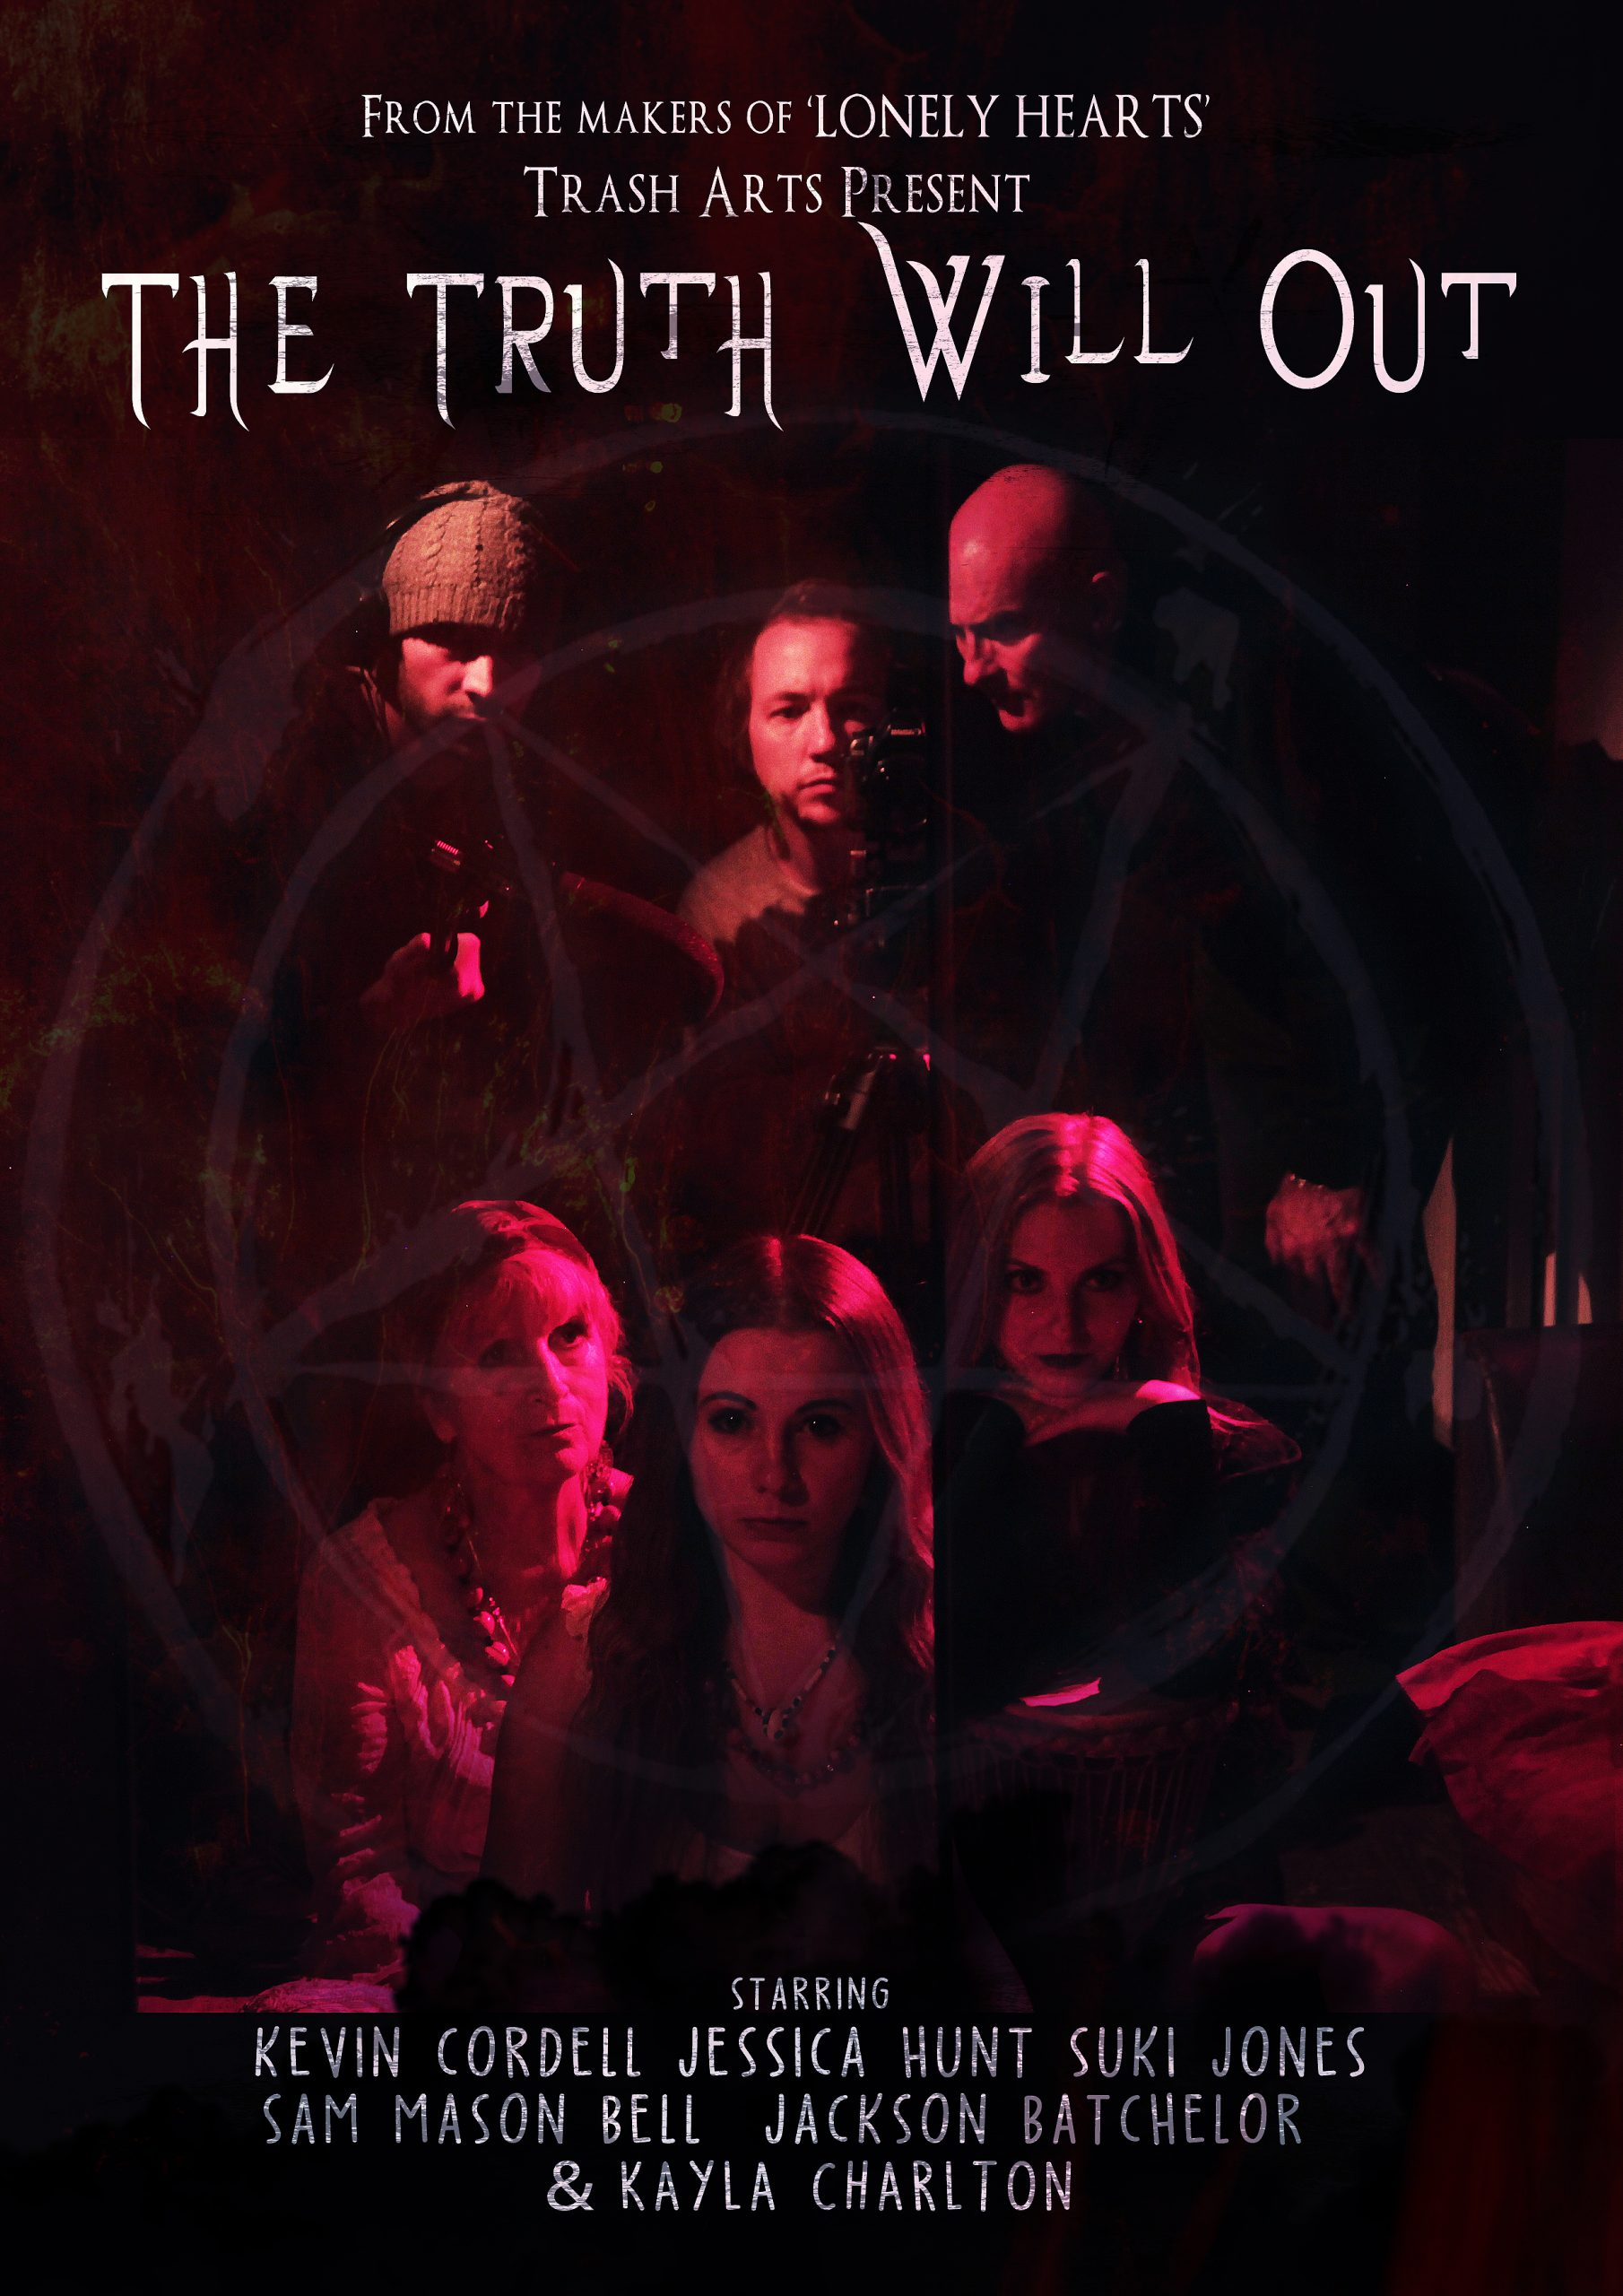 An Interview with Trash Arts Co-Directors Sam Mason-Bell and Jessica Hunt, The Truth Will Out